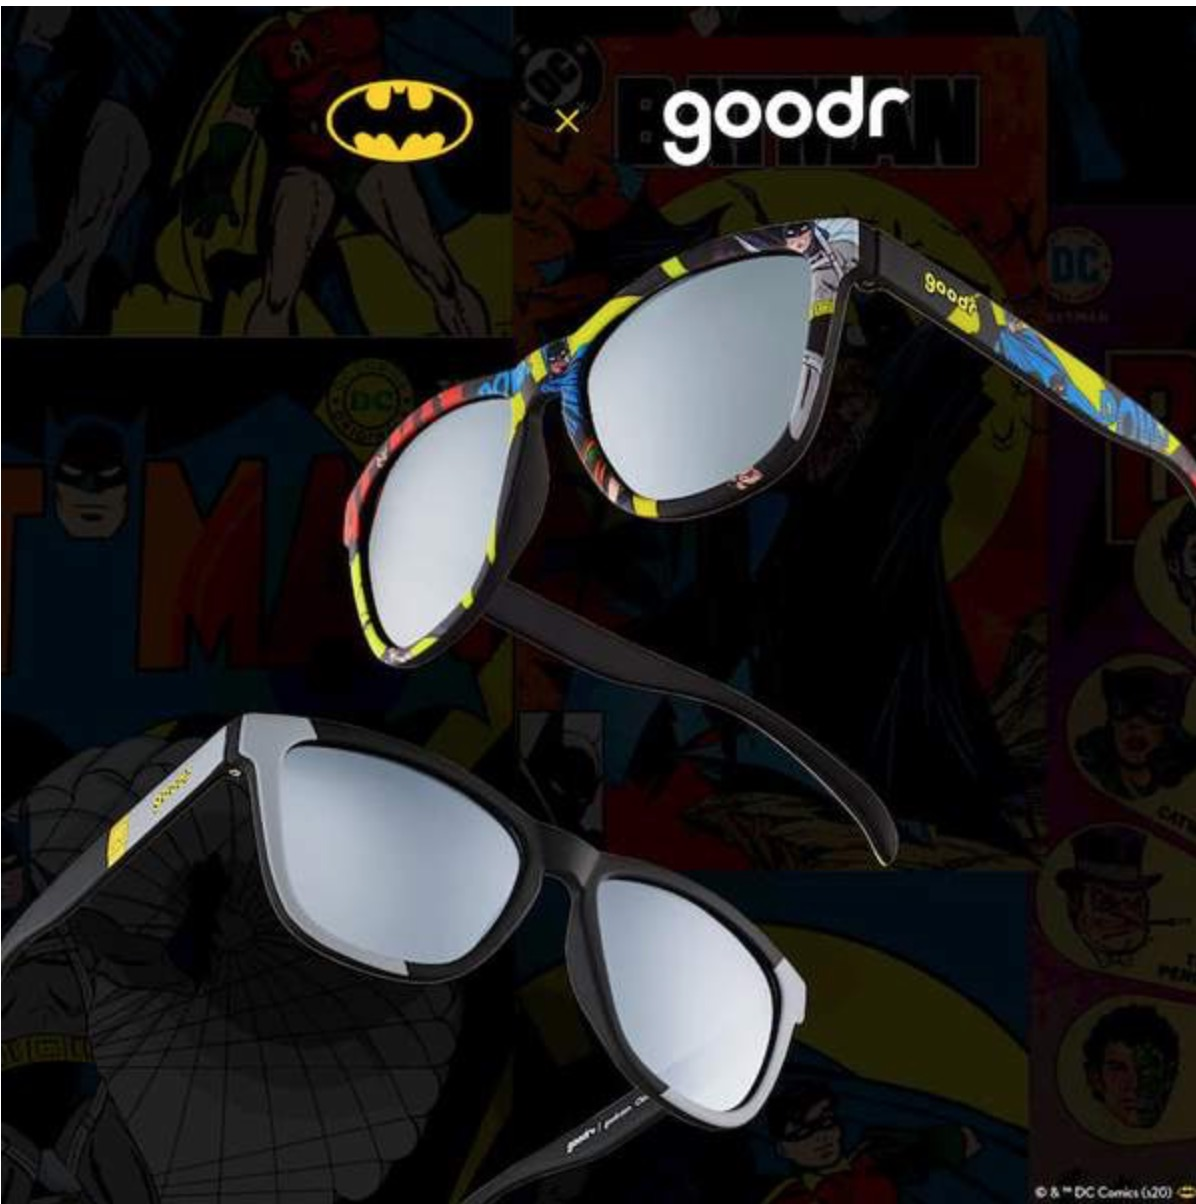 Goodr Batman Caped Crusader Sun Shaders